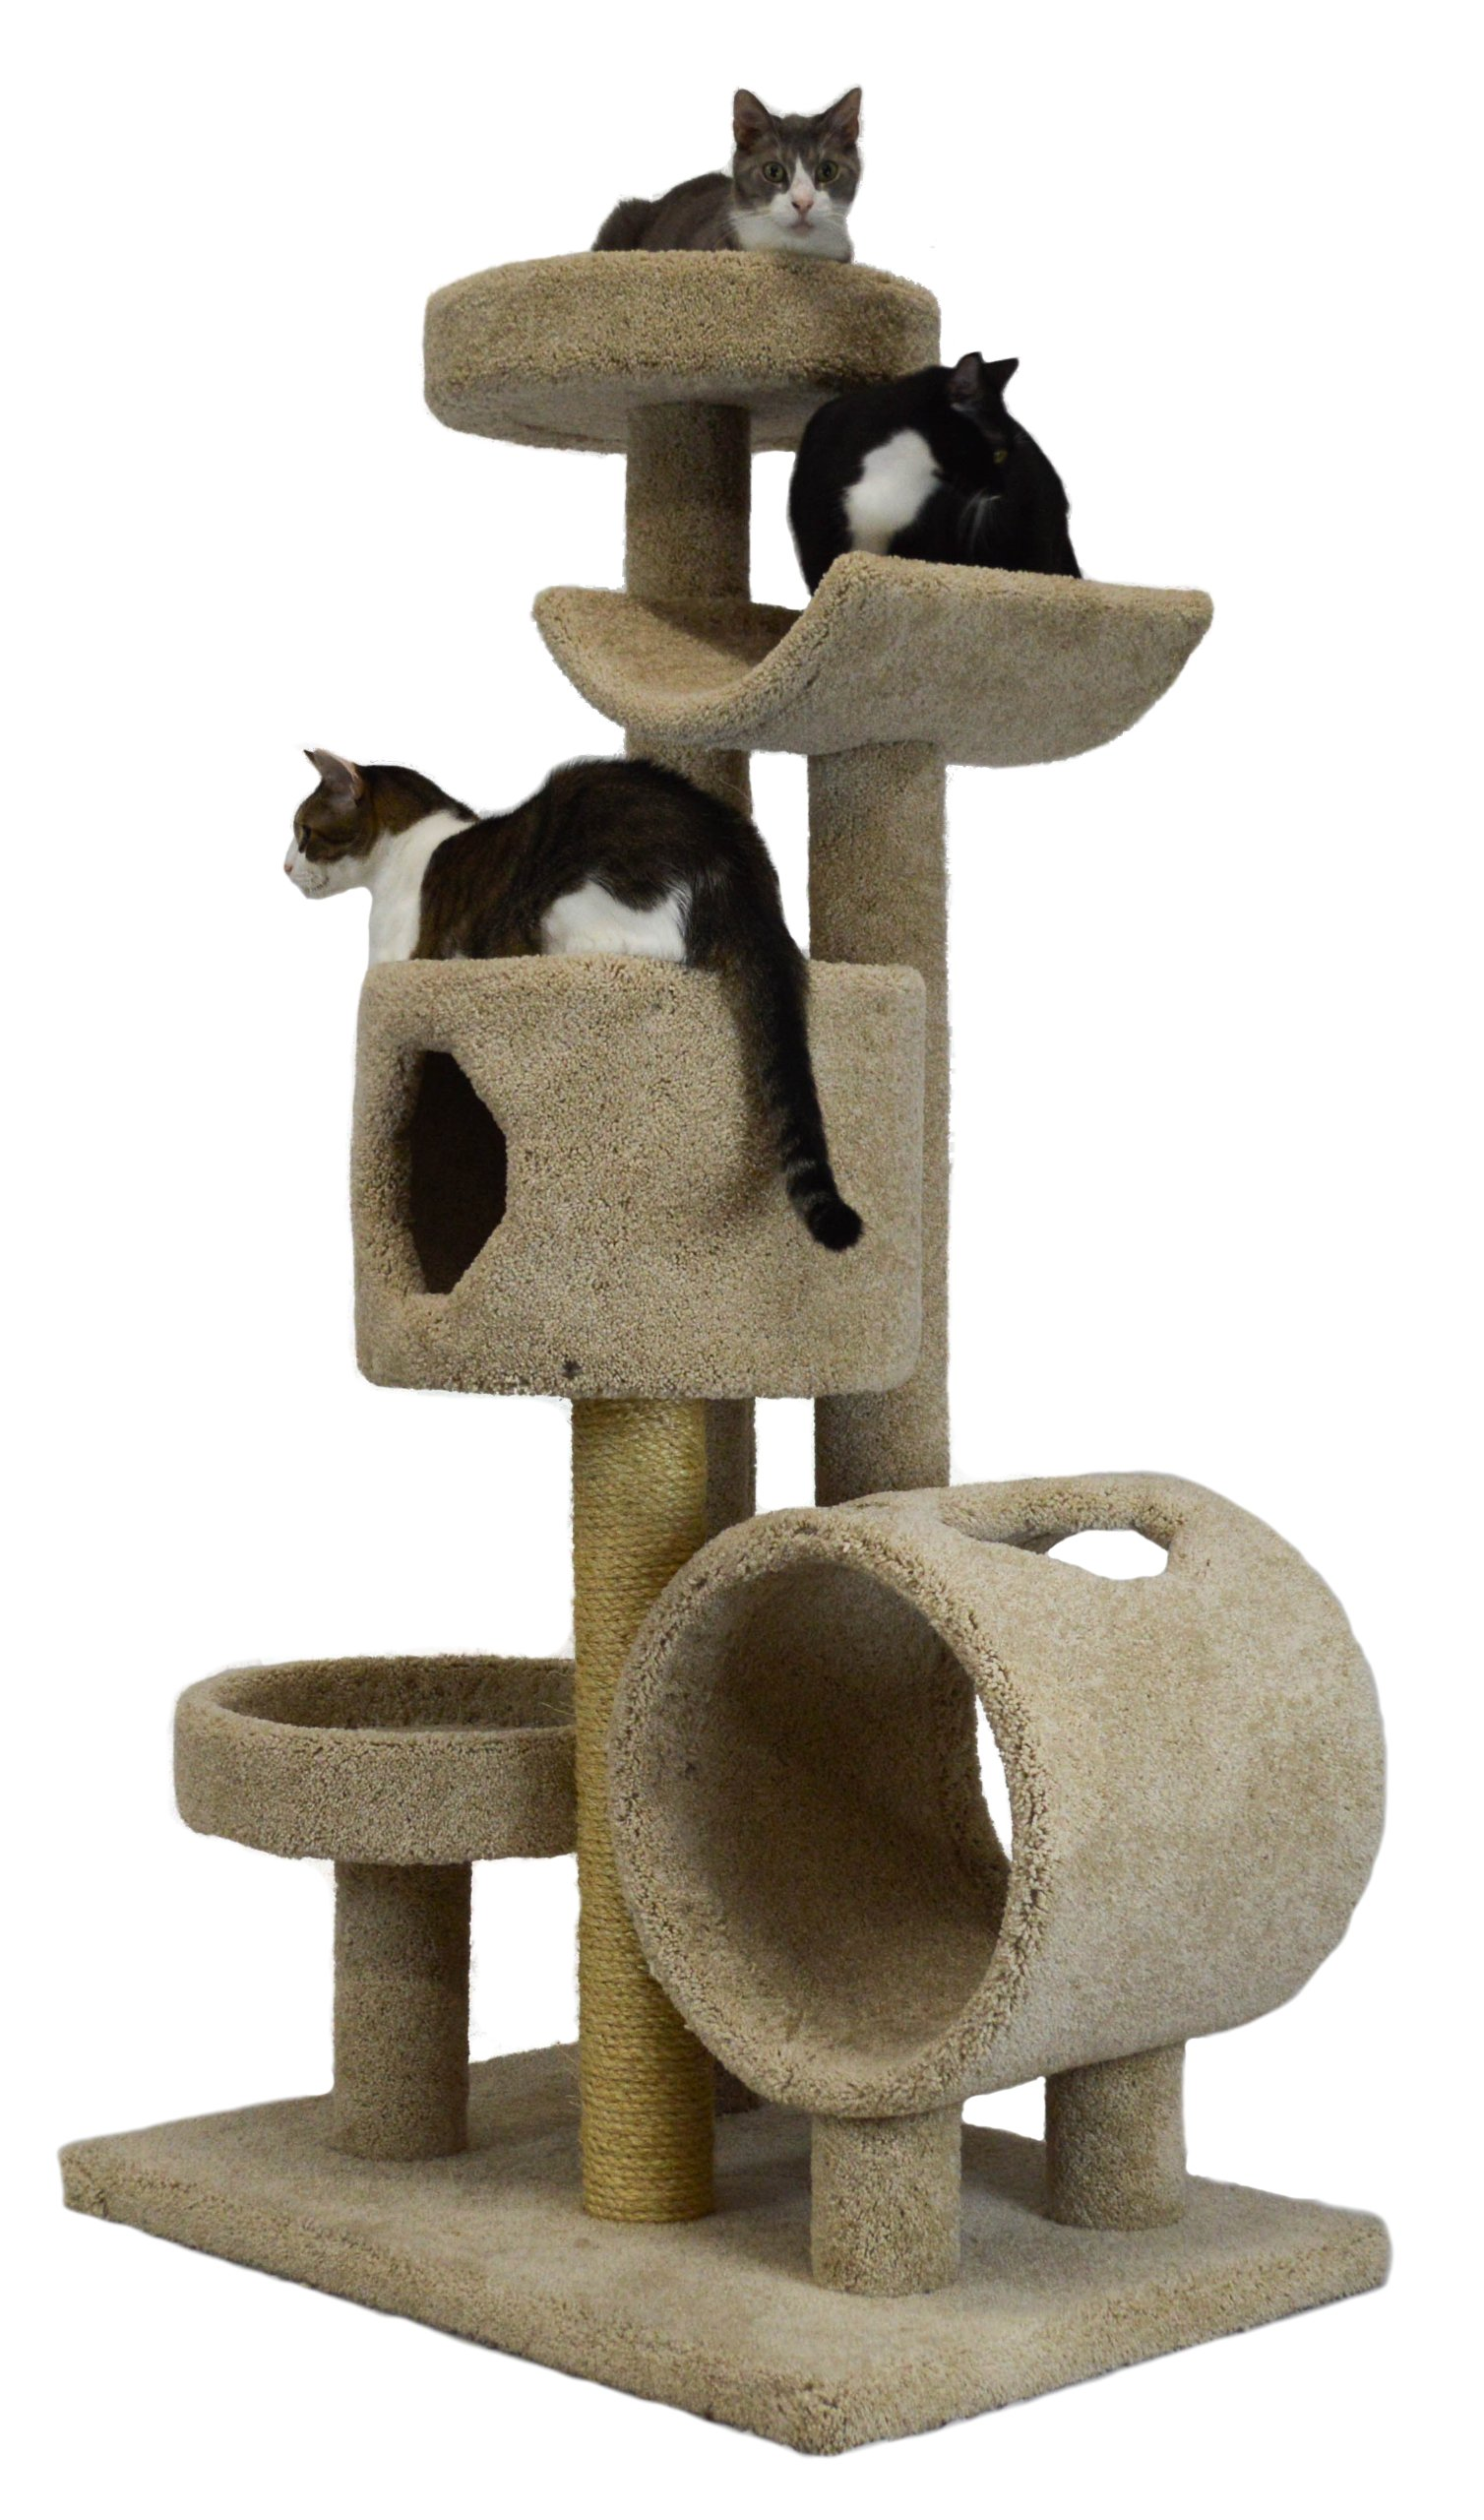 Molly and Friends ''Jungle Gym'' Premium Handmade 5-Tier Cat Tree with Sisal, Model 23L42, Beige